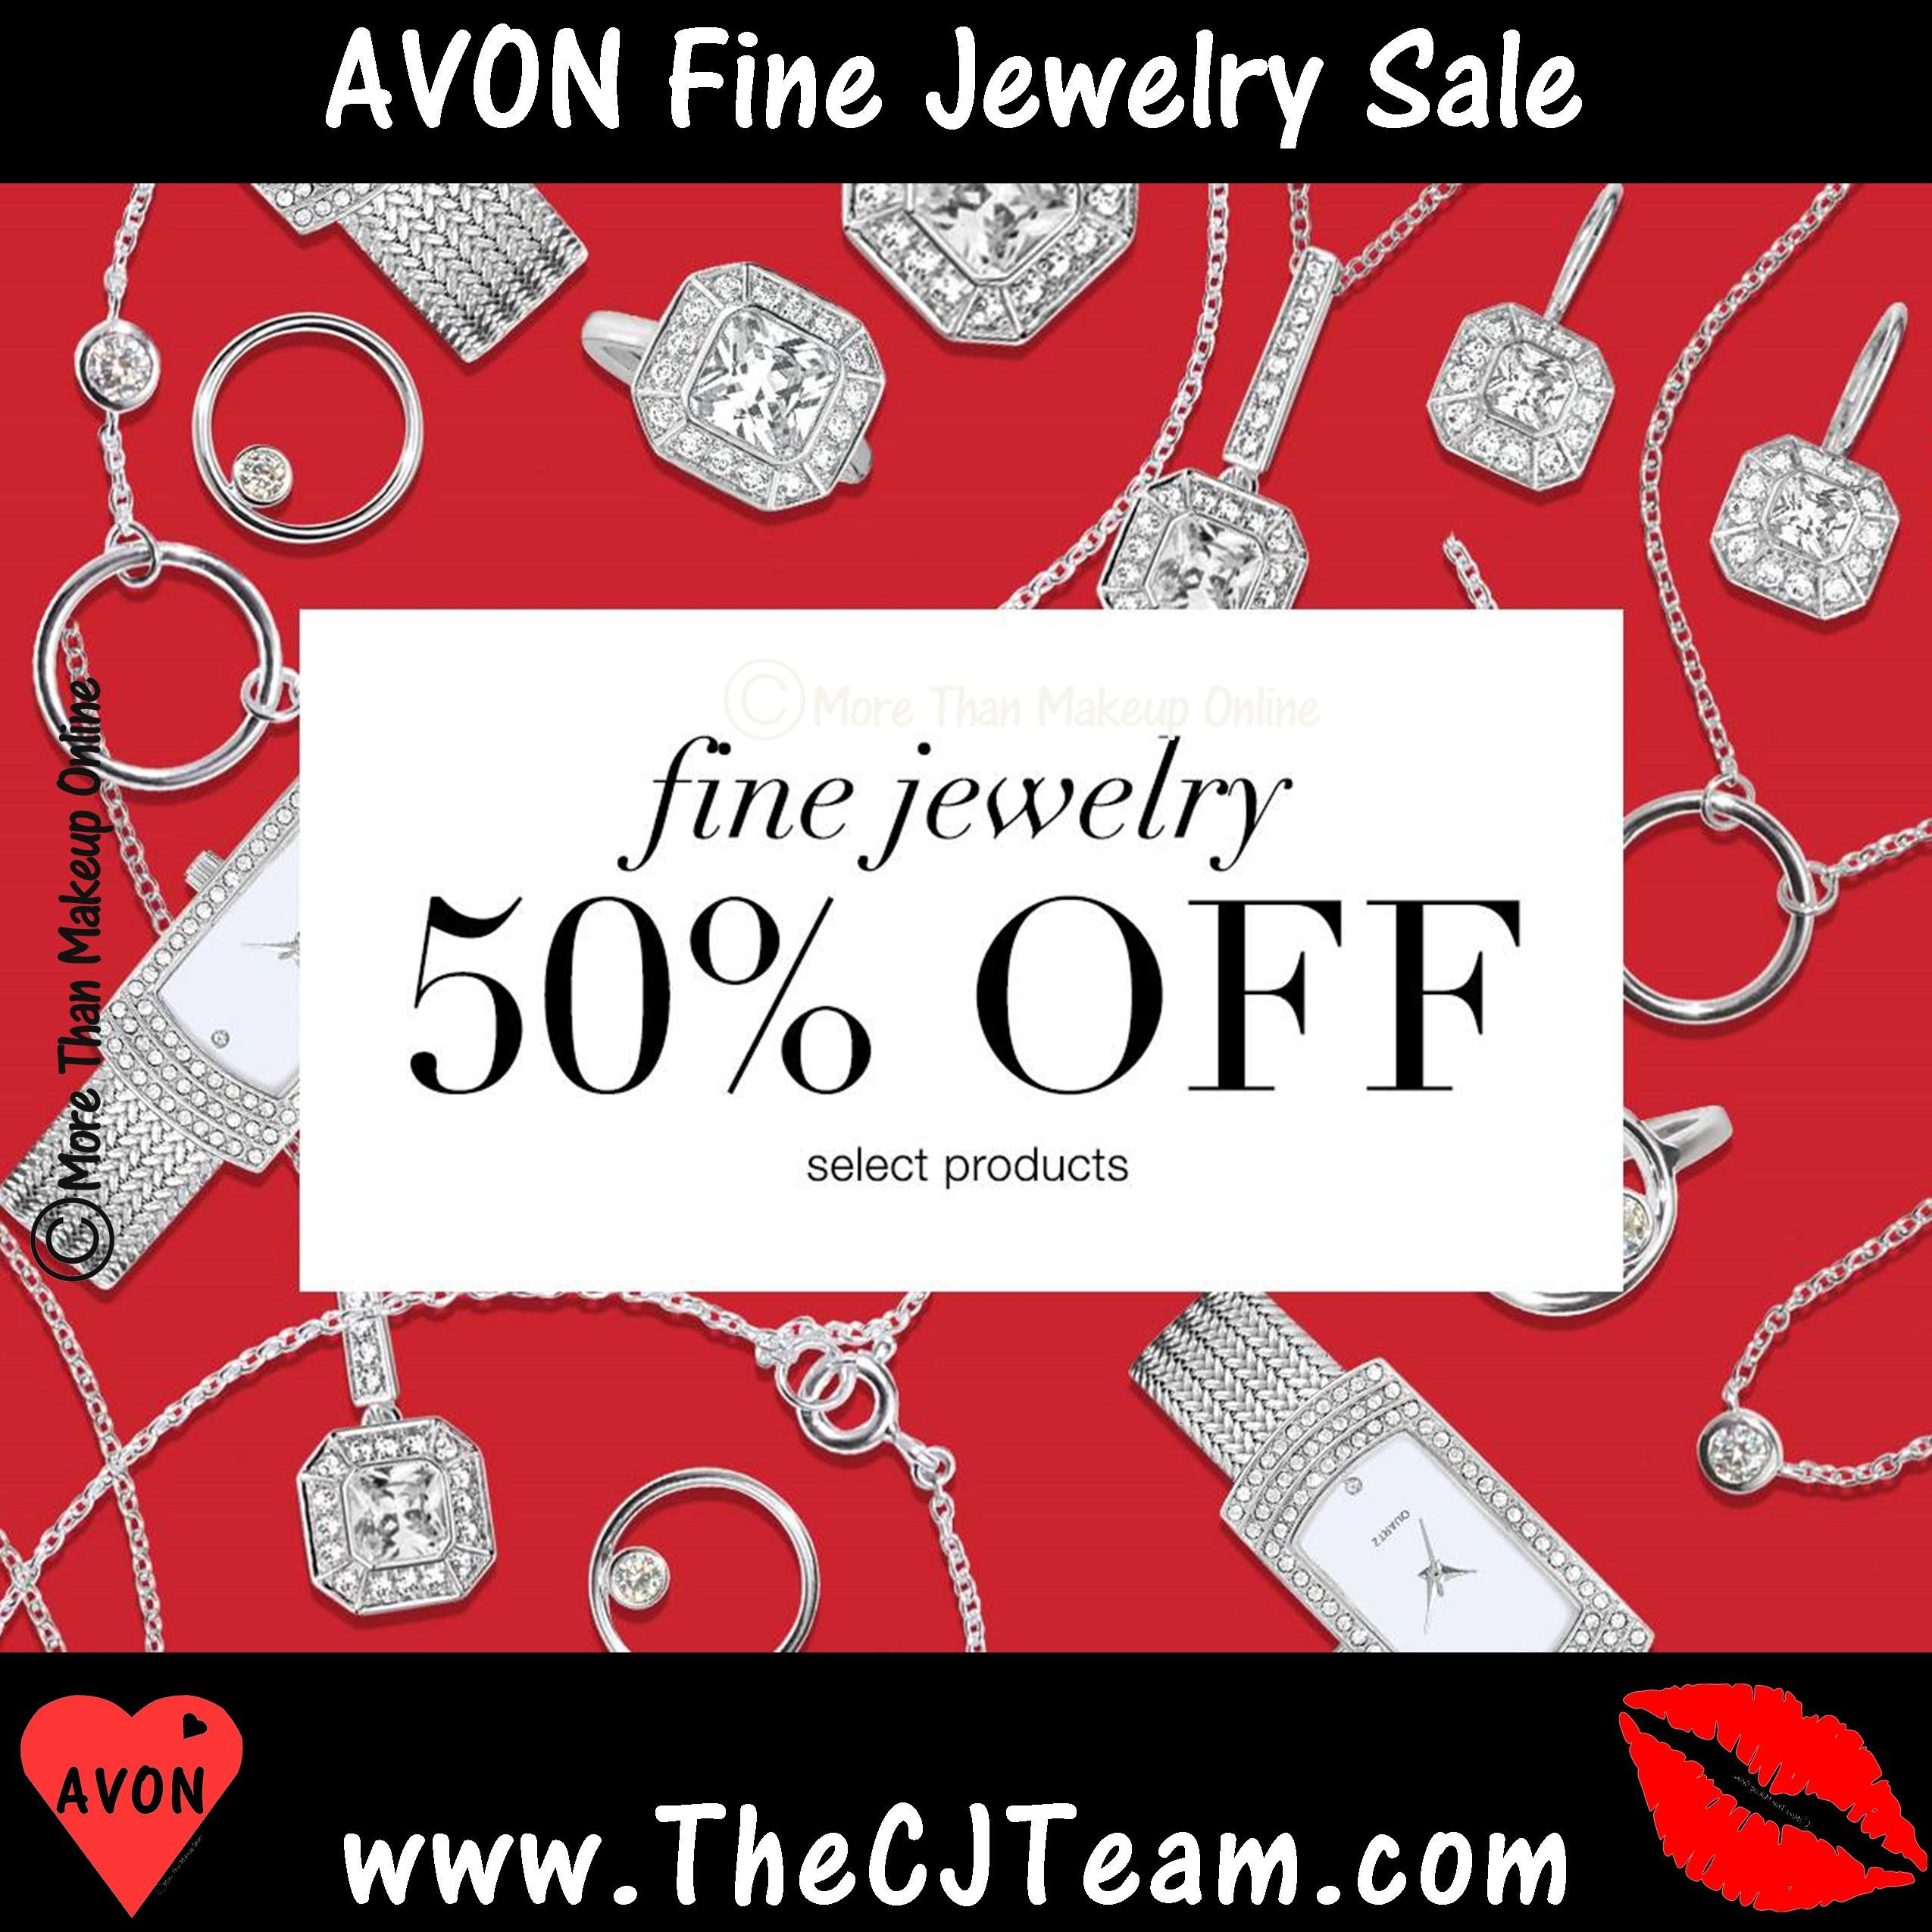 Avon fine jewelry flash sale treat yourself because why not treat yourself because why not just in time for valentines day shop that necklace bracelet or earring set youve had your eye on at up to 50 solutioingenieria Image collections